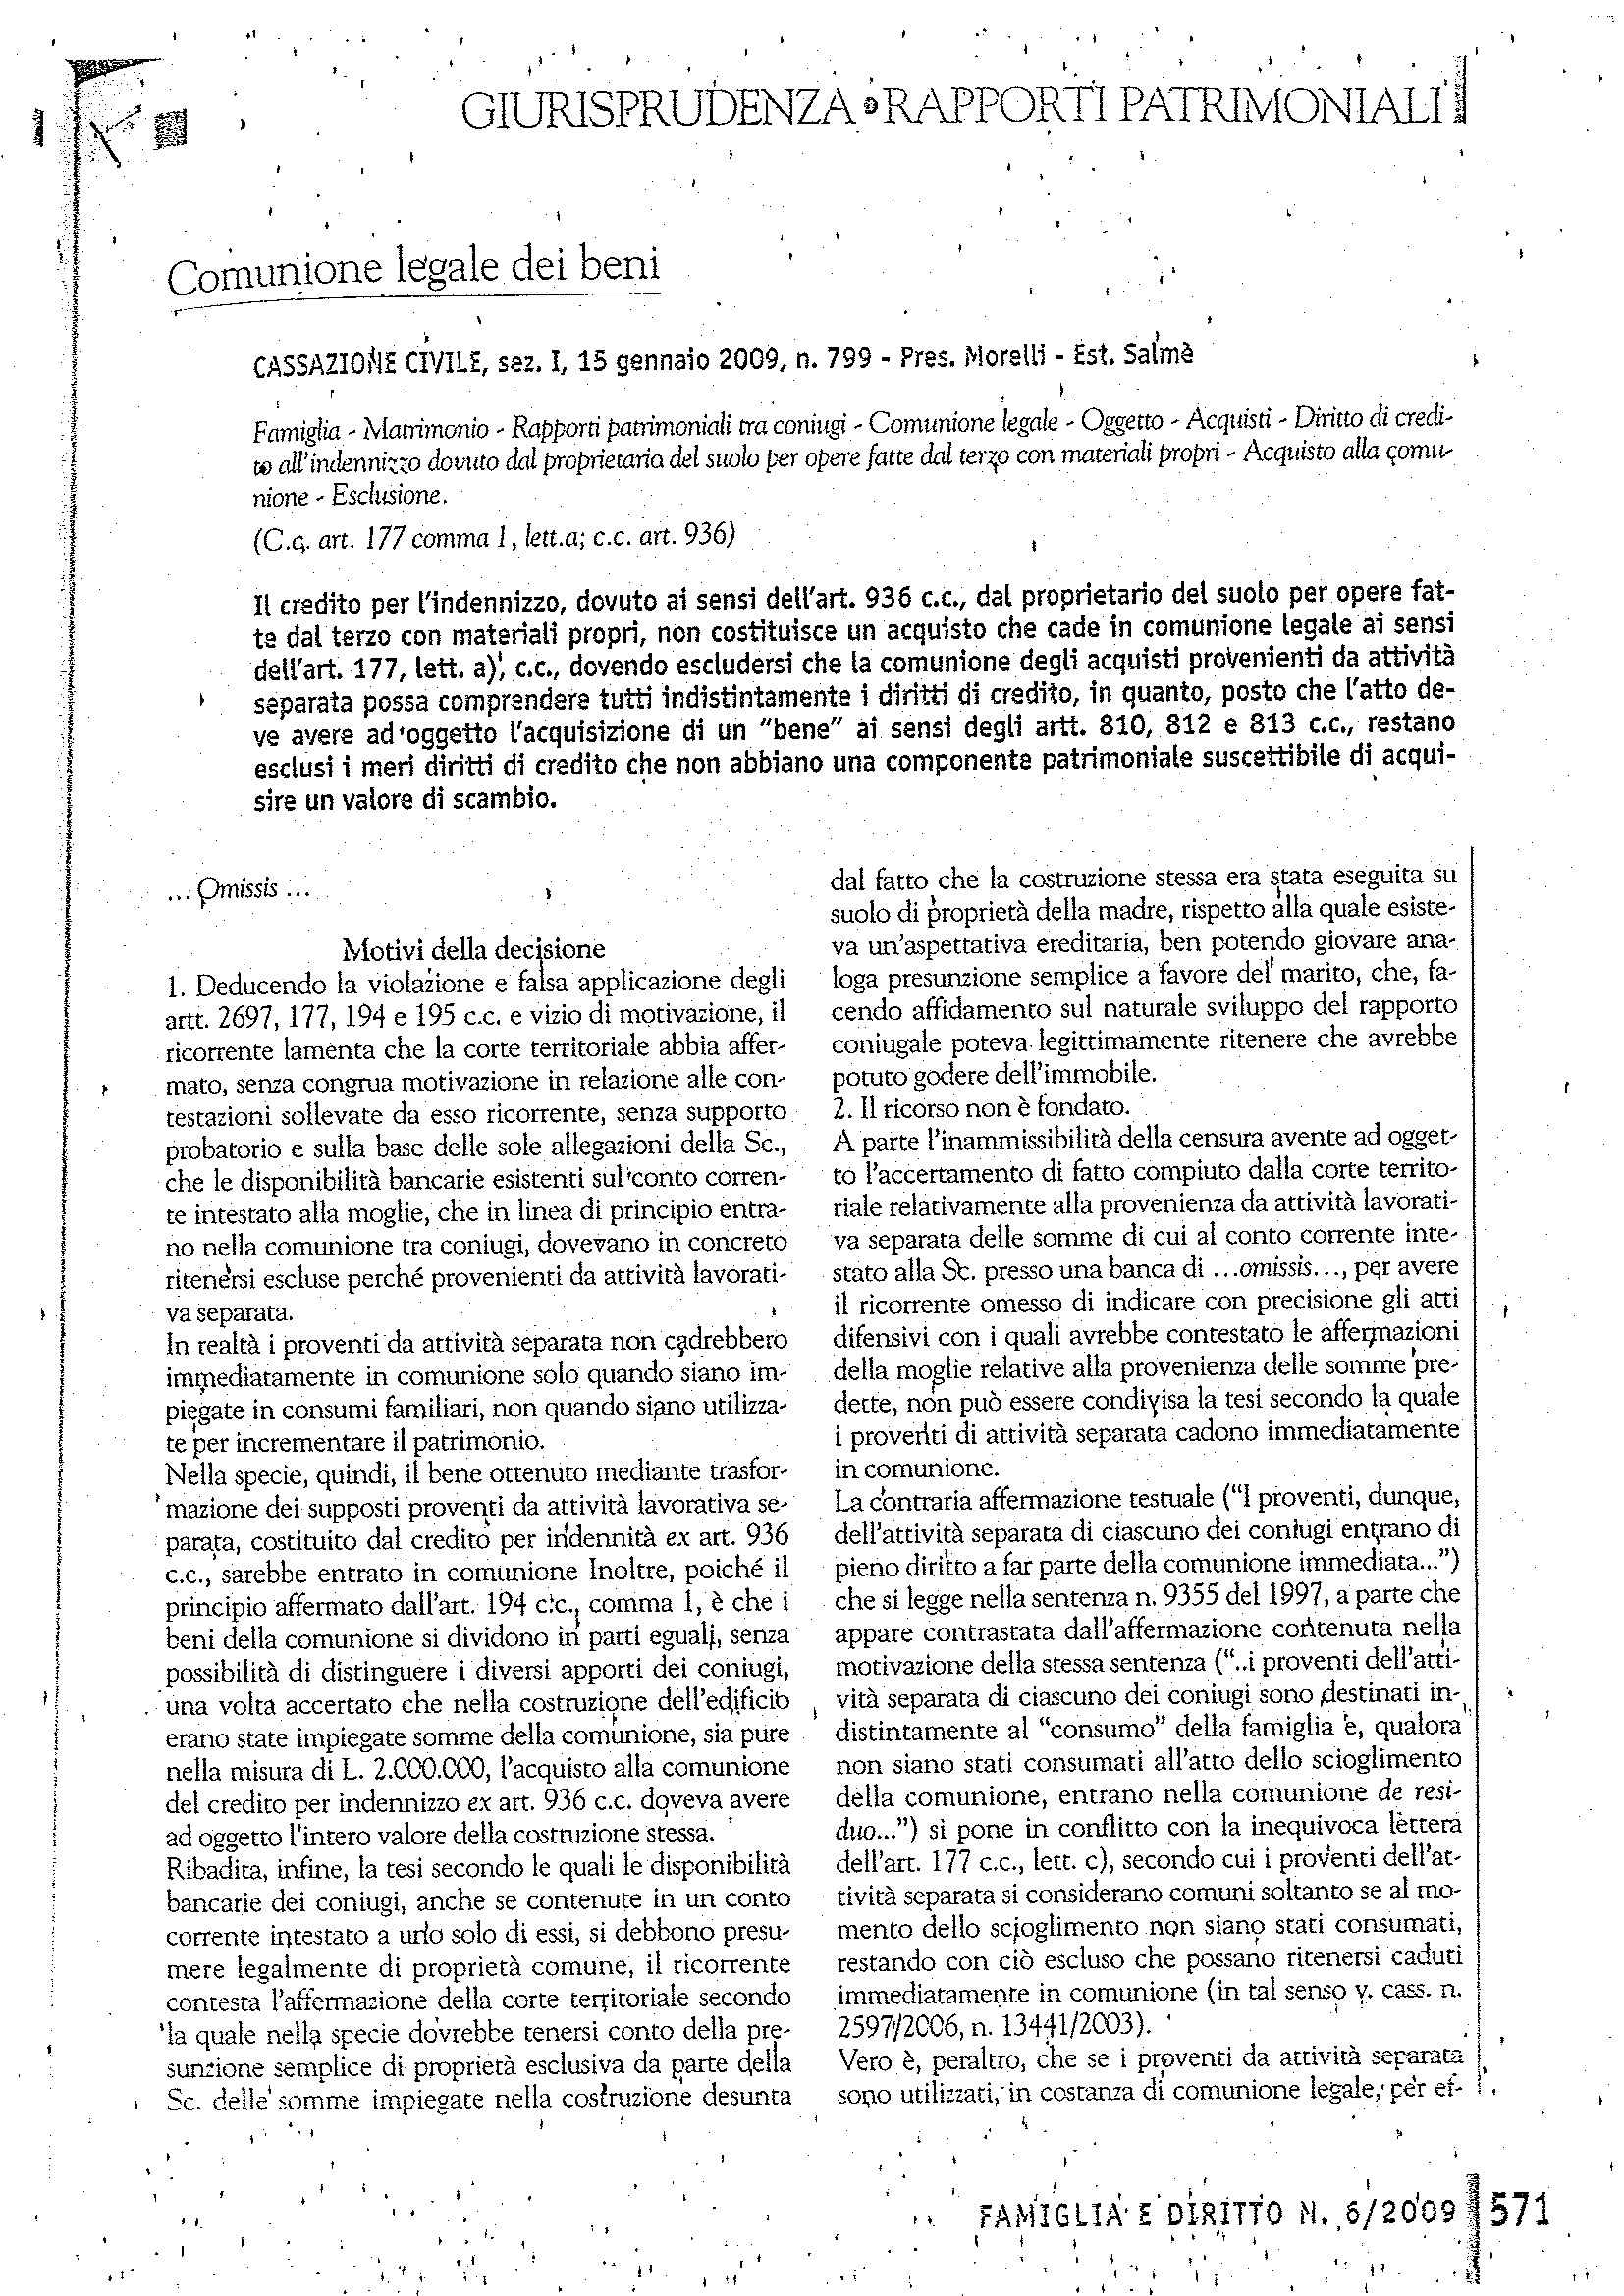 Comunione legale - C. Cass. n. 799/09 Pag. 1